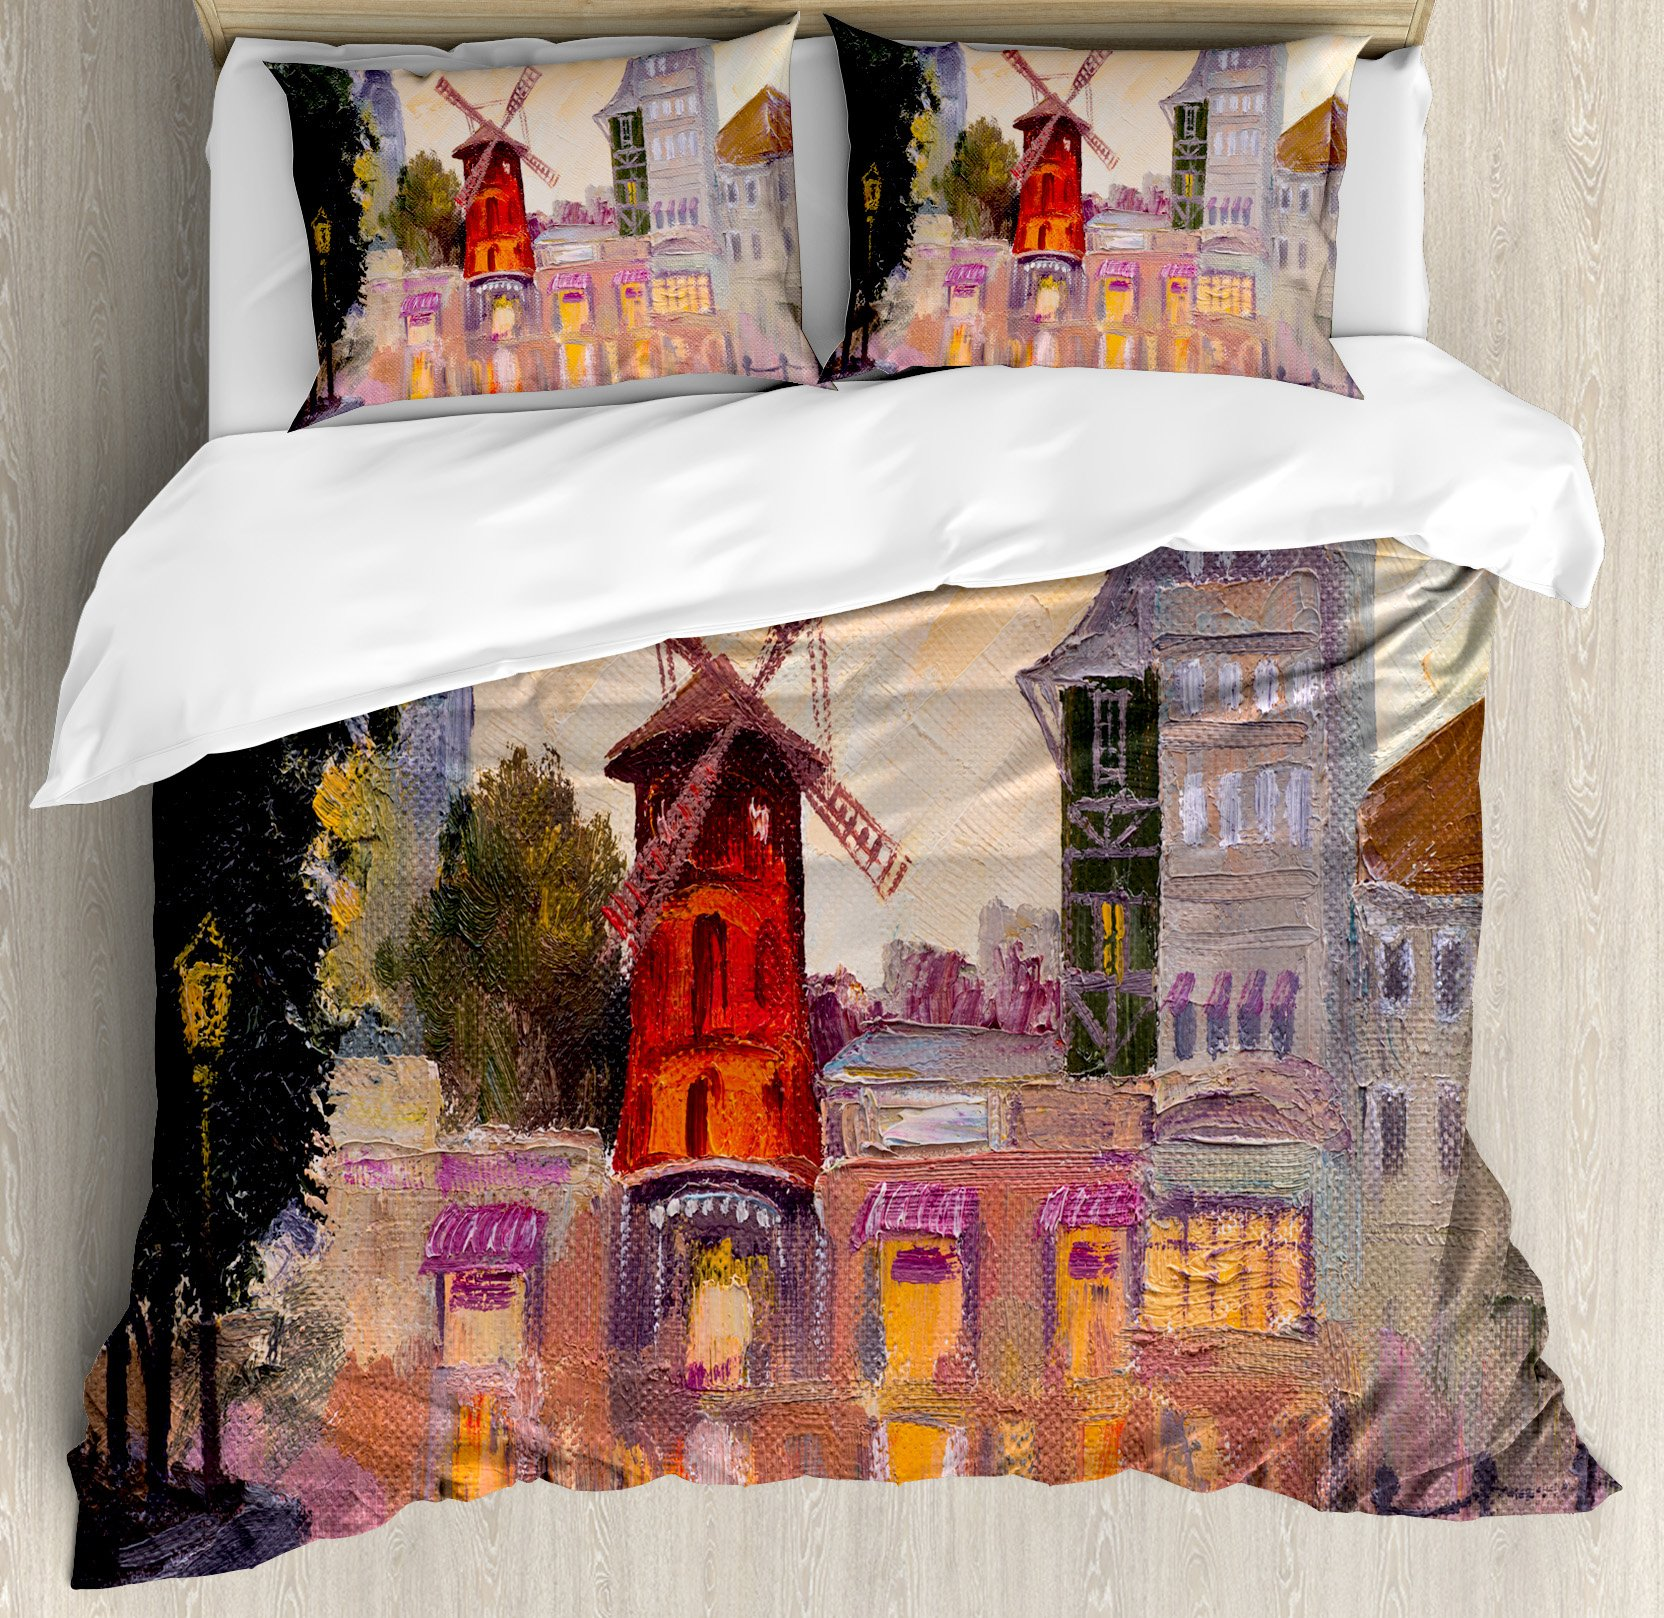 European Duvet Cover Set King Size by Ambesonne, Painting of Moulin Rouge in Paris City Centre of Love Vintage France Art Print, Decorative 3 Piece Bedding Set with 2 Pillow Shams, Multicolor